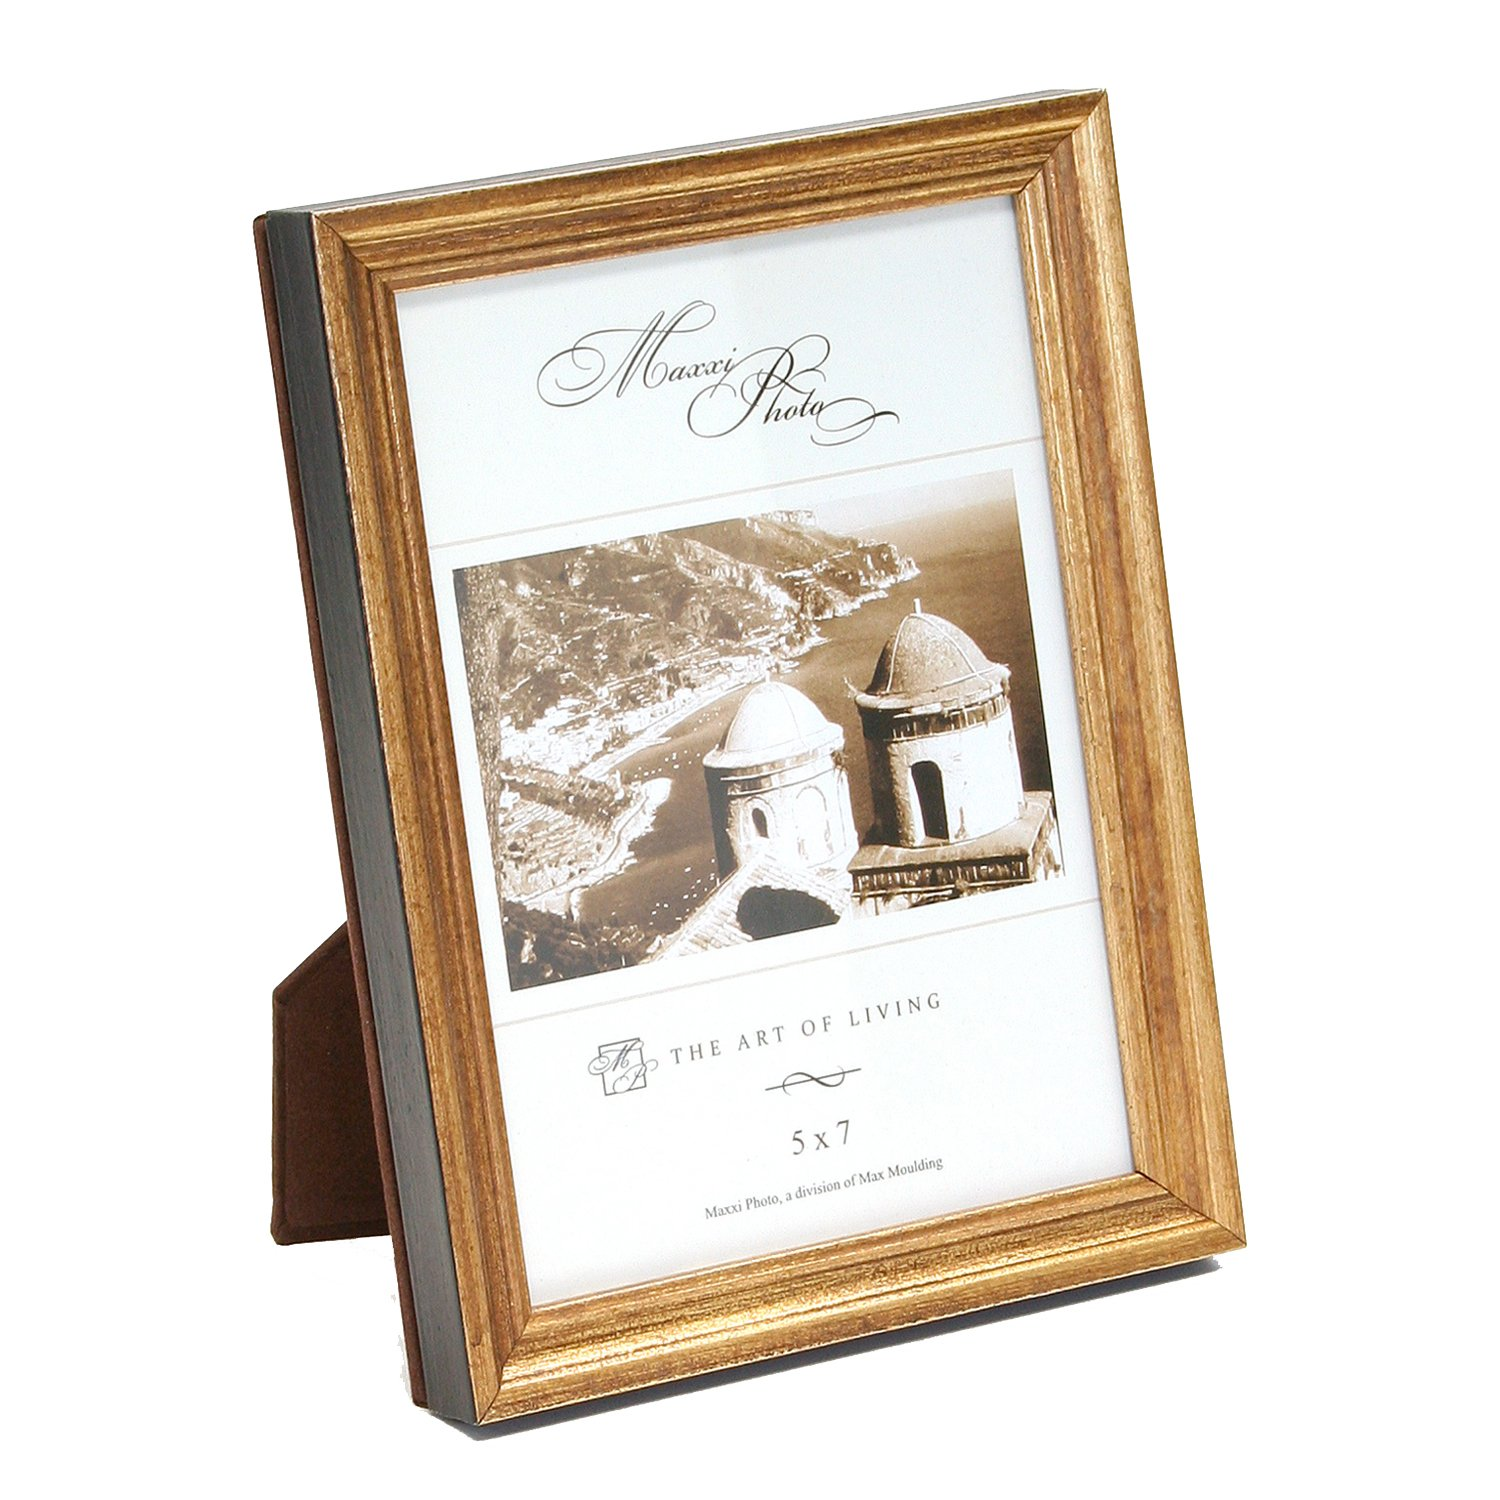 Maxxi Designs Photo Frame with Easel Back, 5 x